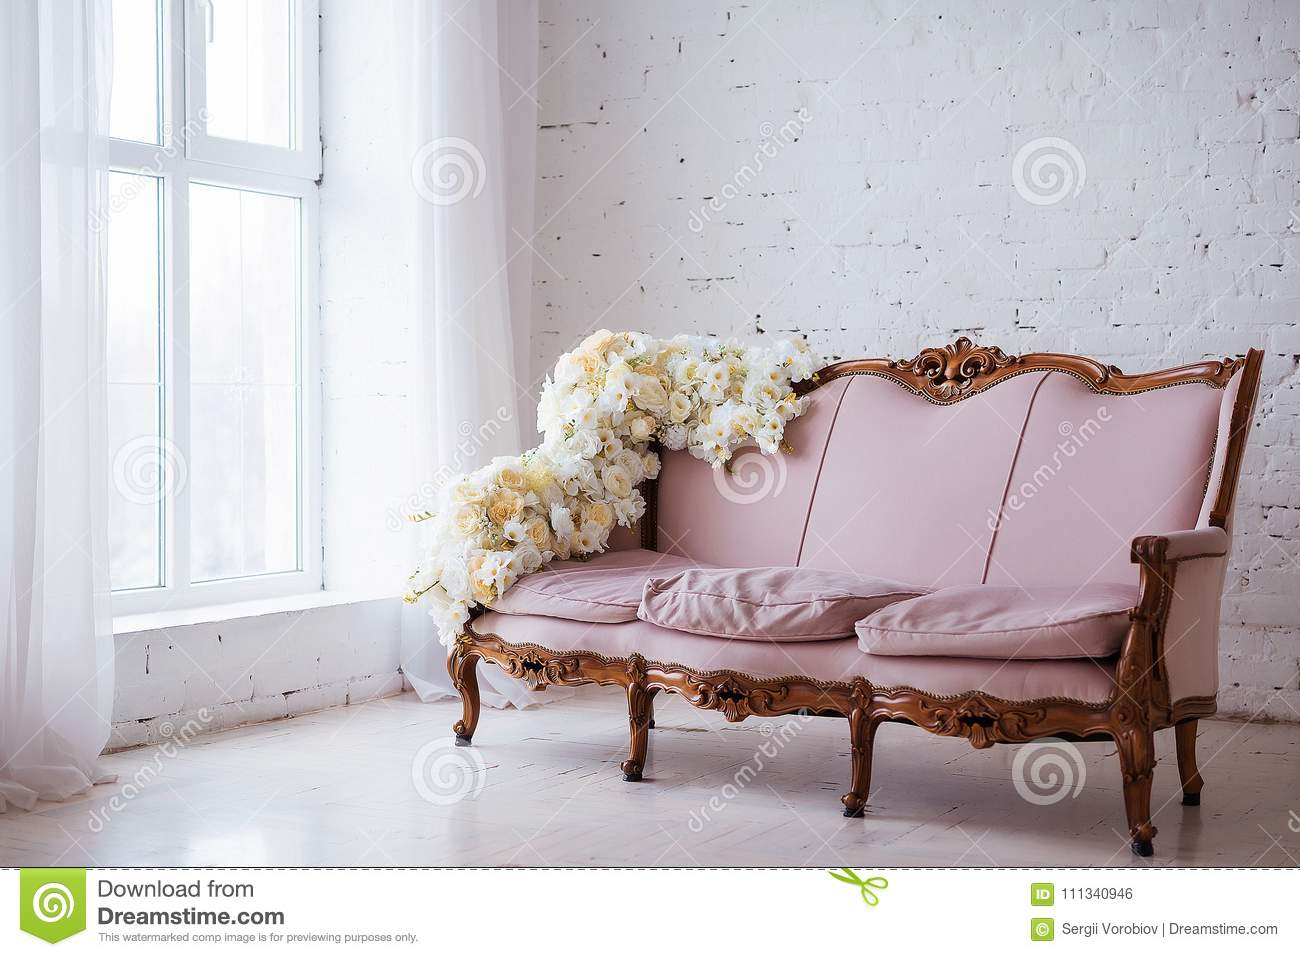 Vintage Style Sofa Decorated With Flowers In Loft Interior Room With